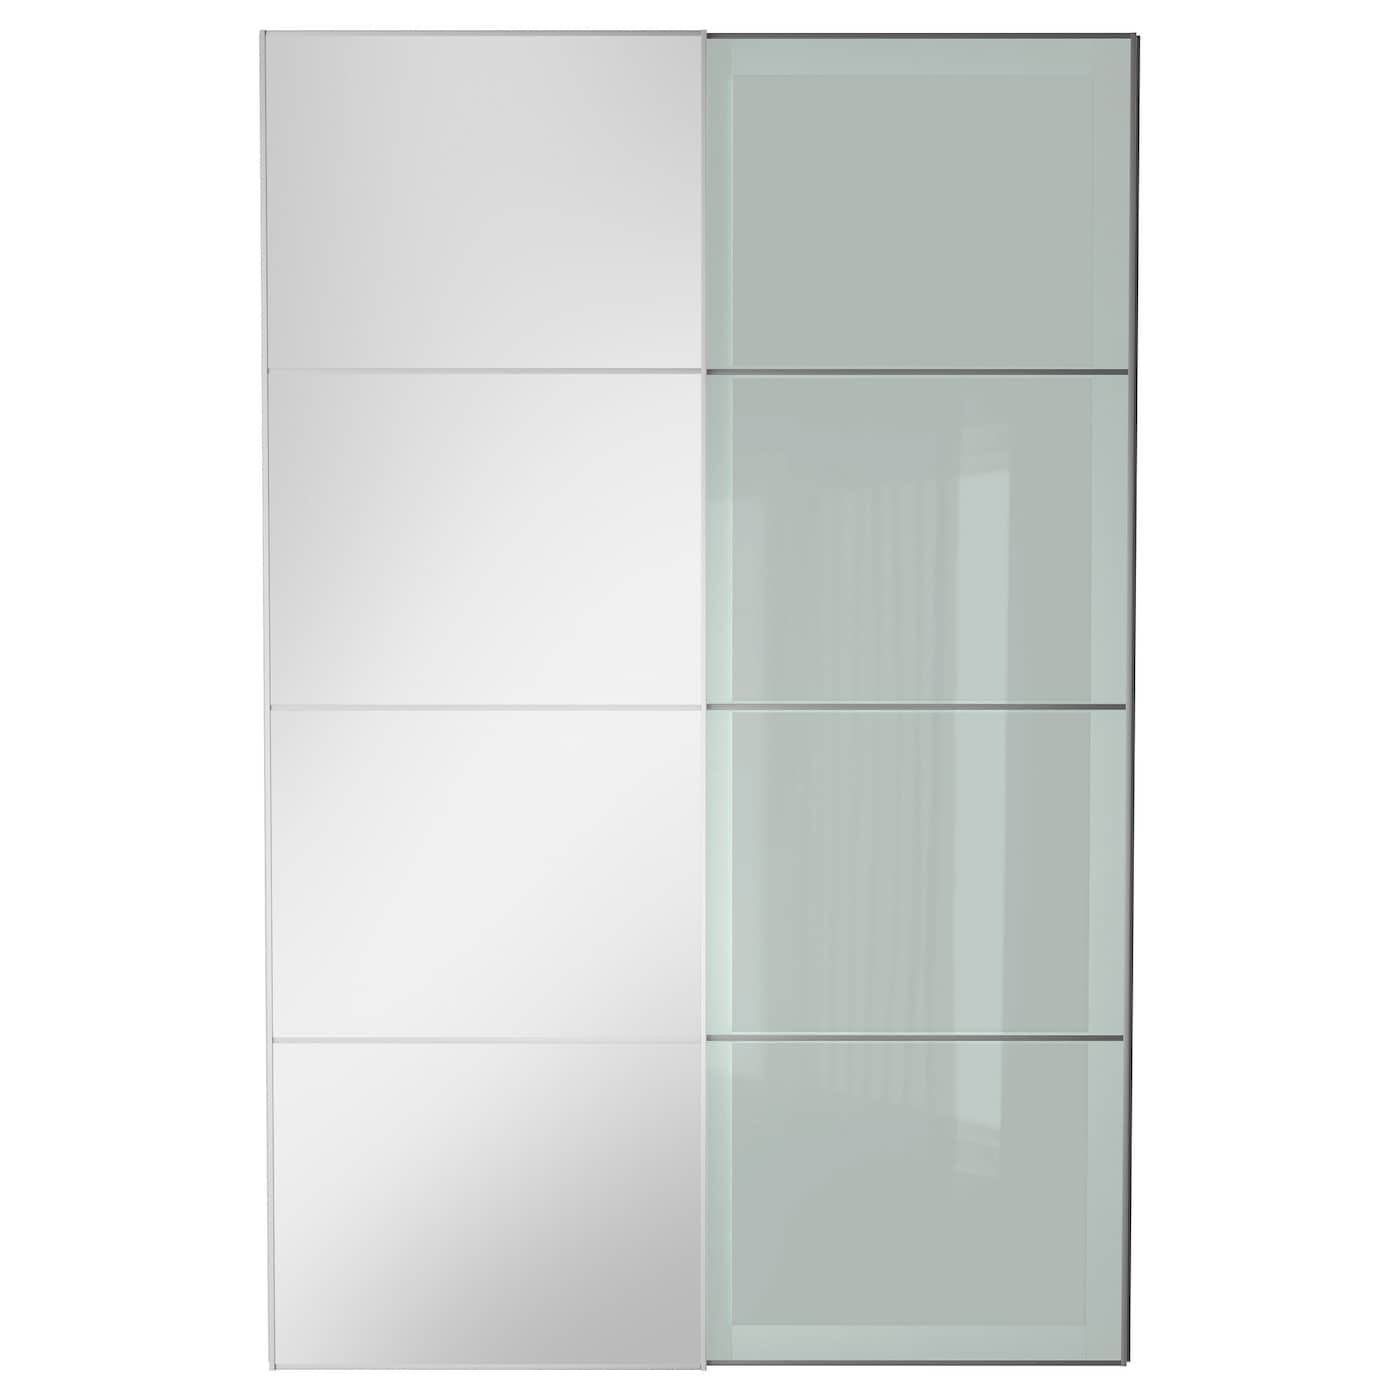 Auli sekken pair of sliding doors mirror glass frosted for Porte miroir ikea